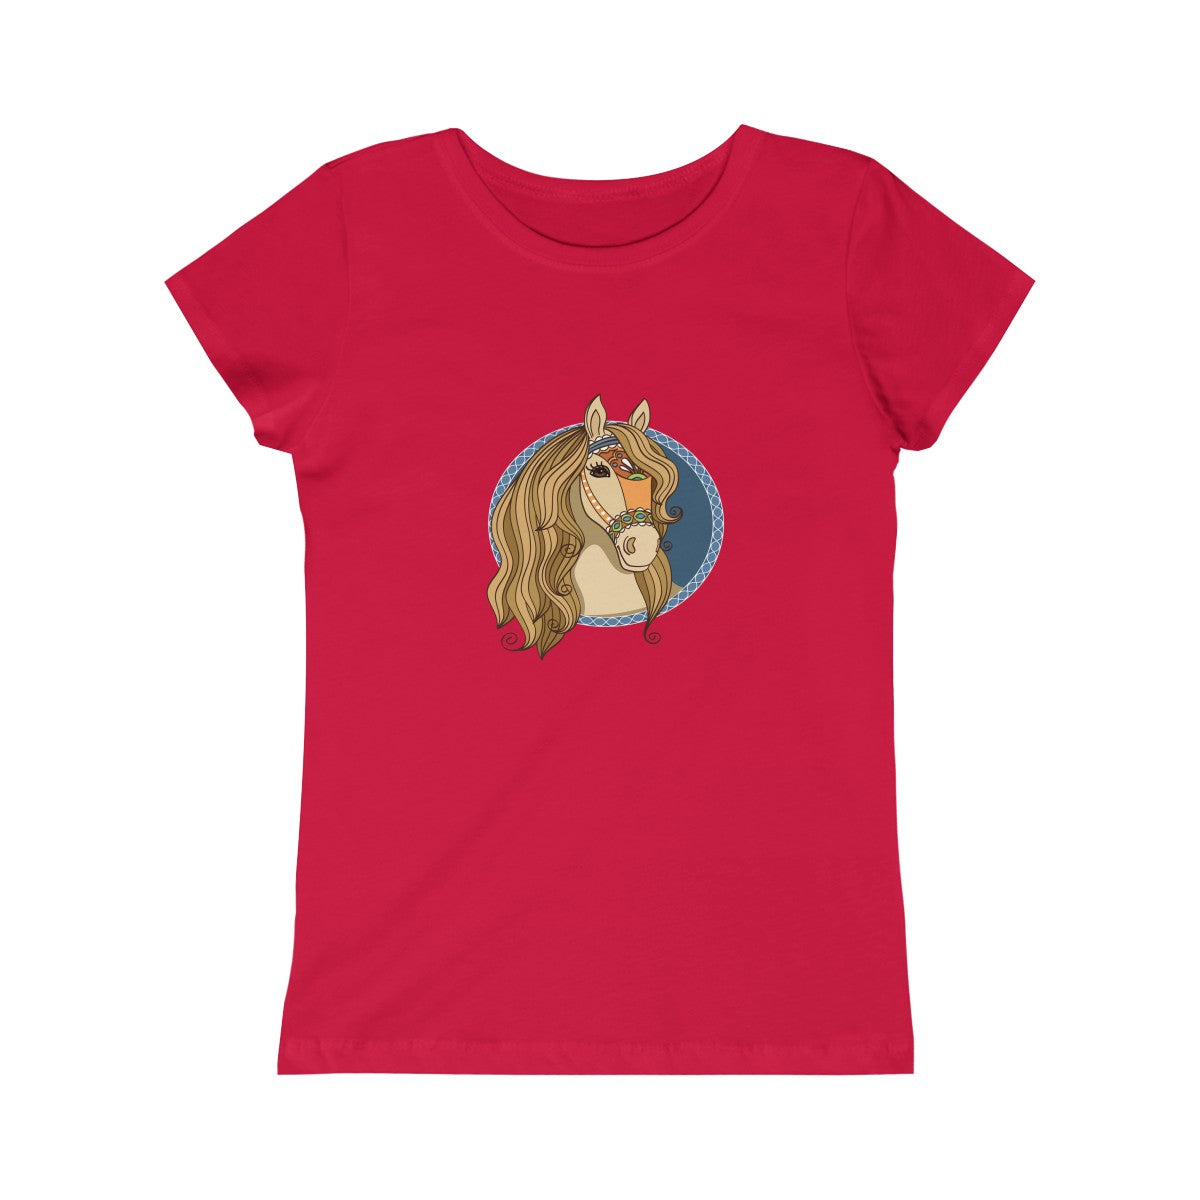 Horse Girls Youth  Princess Casual Custom Handmade T-Shirt - mysterynb